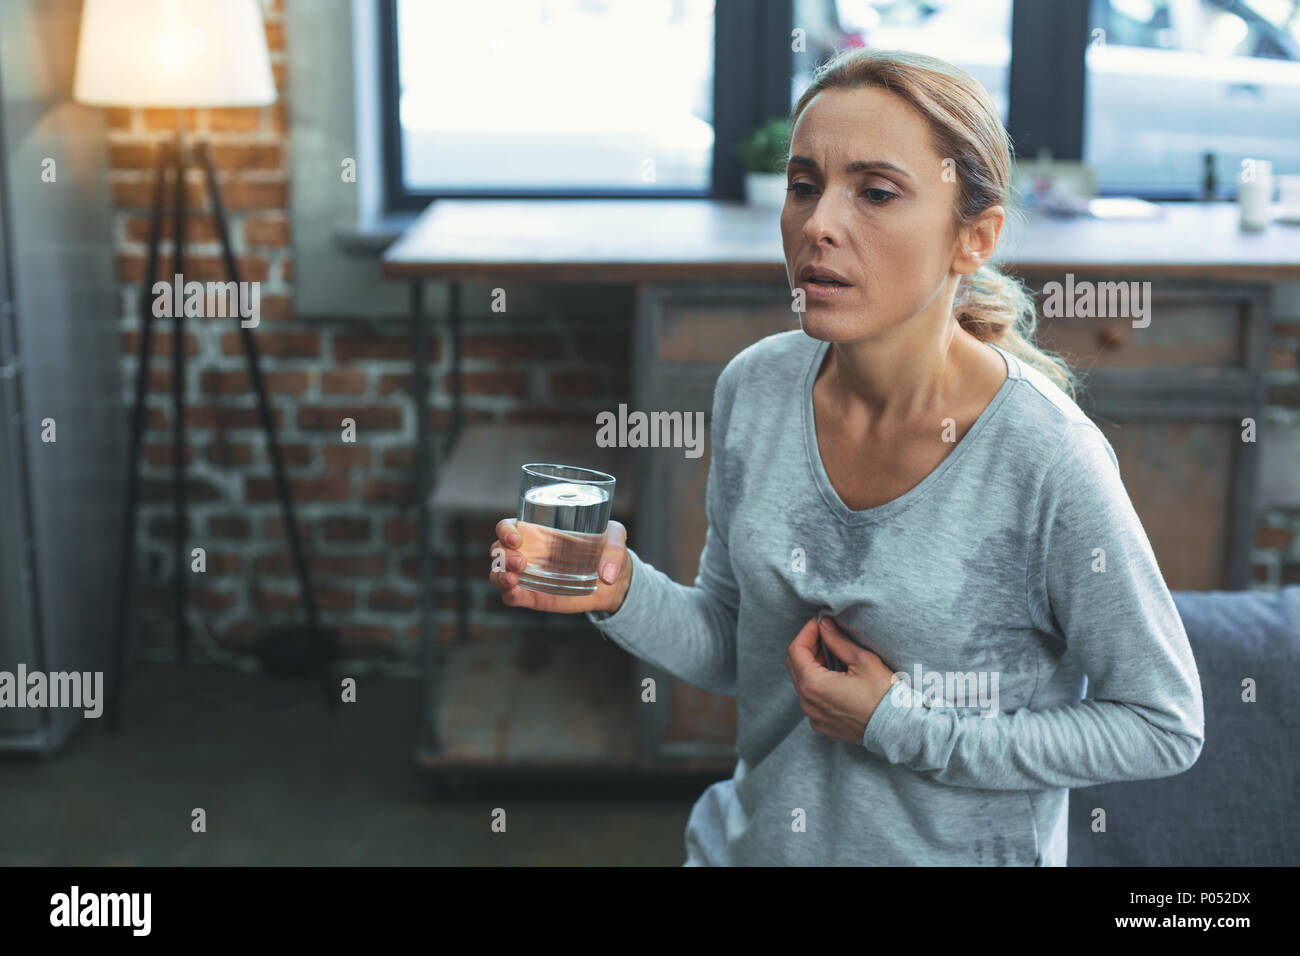 Exhausted mature woman facing menopause - Stock Image